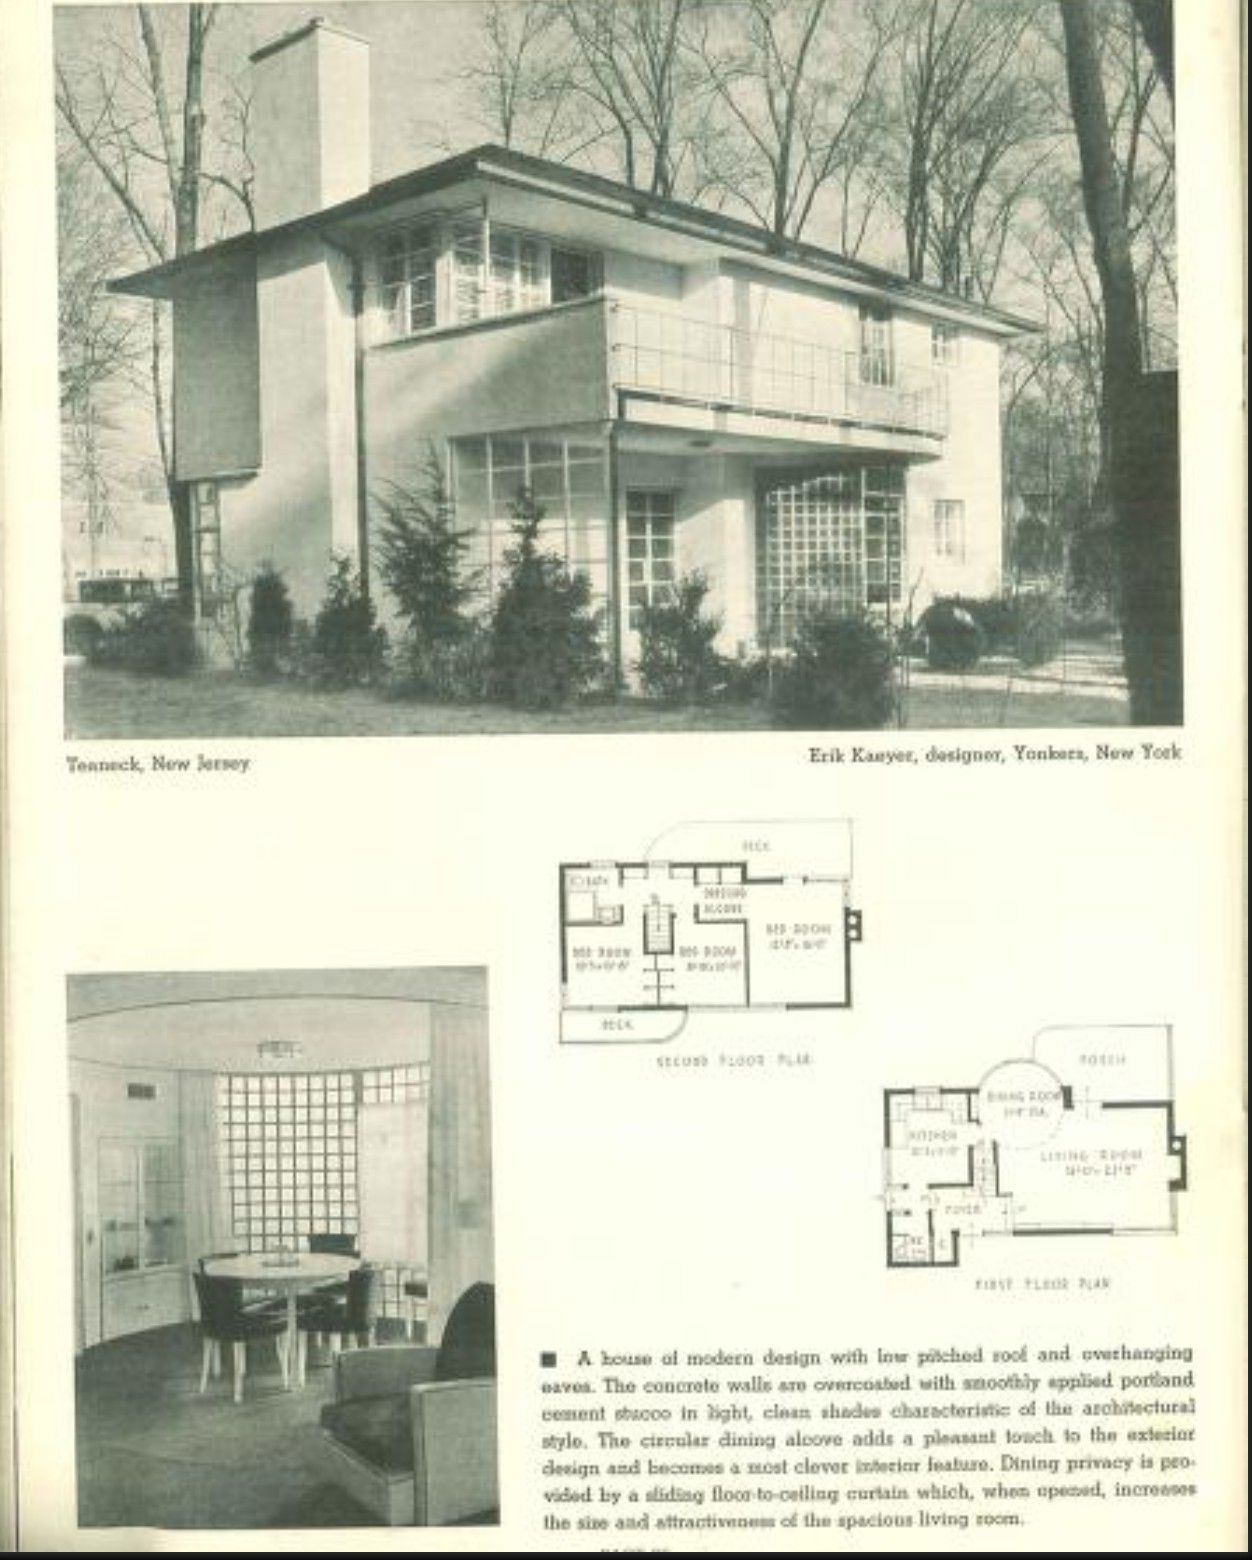 Pin By David Lyday On Houses Vintage House Plans Art Deco Home Art Deco Architecture